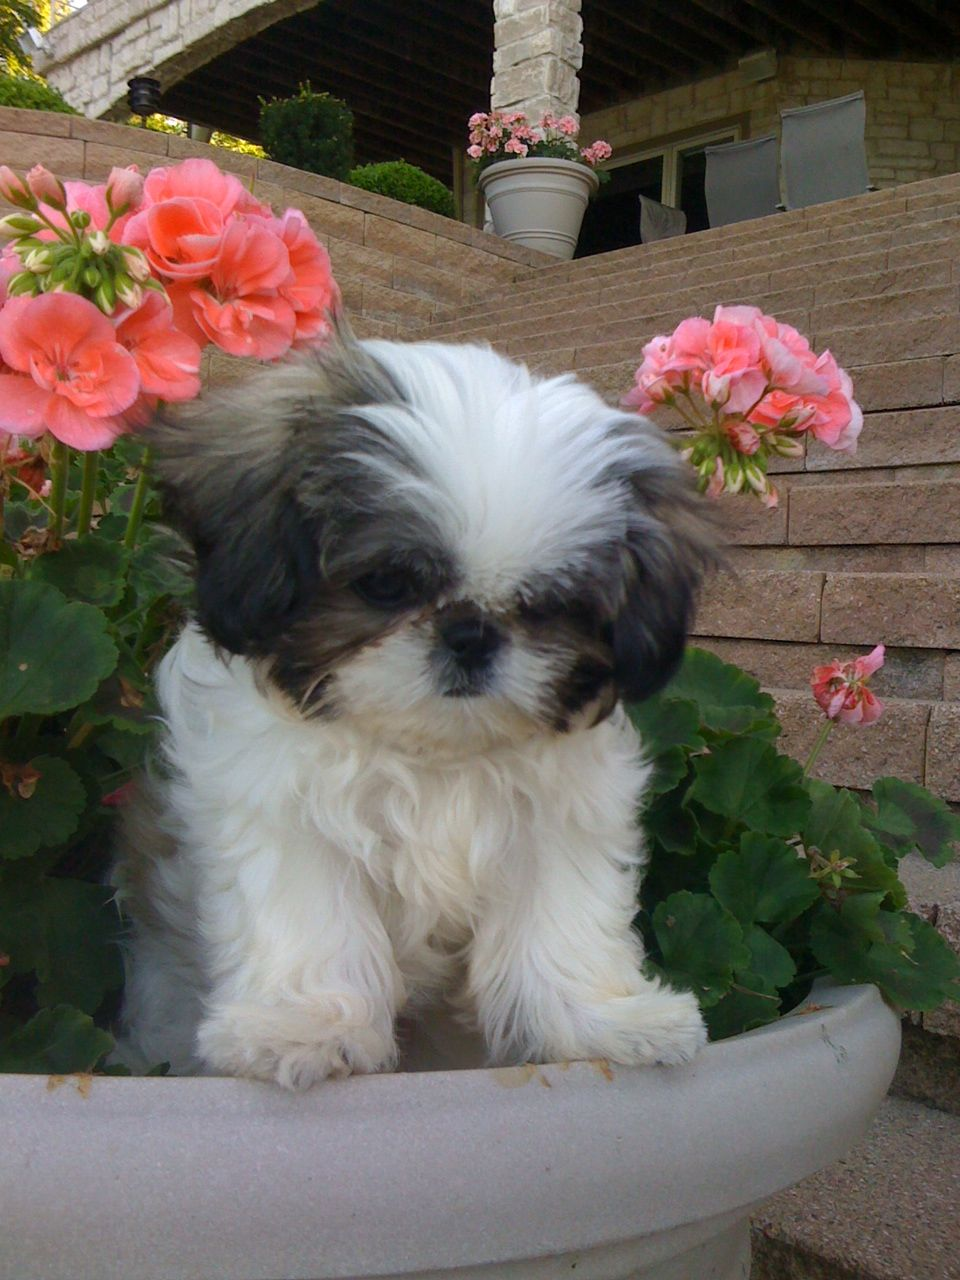 Shih Tzu We Miss Our Oliver Shih Tzu Dog Shih Tzu Baby Dogs